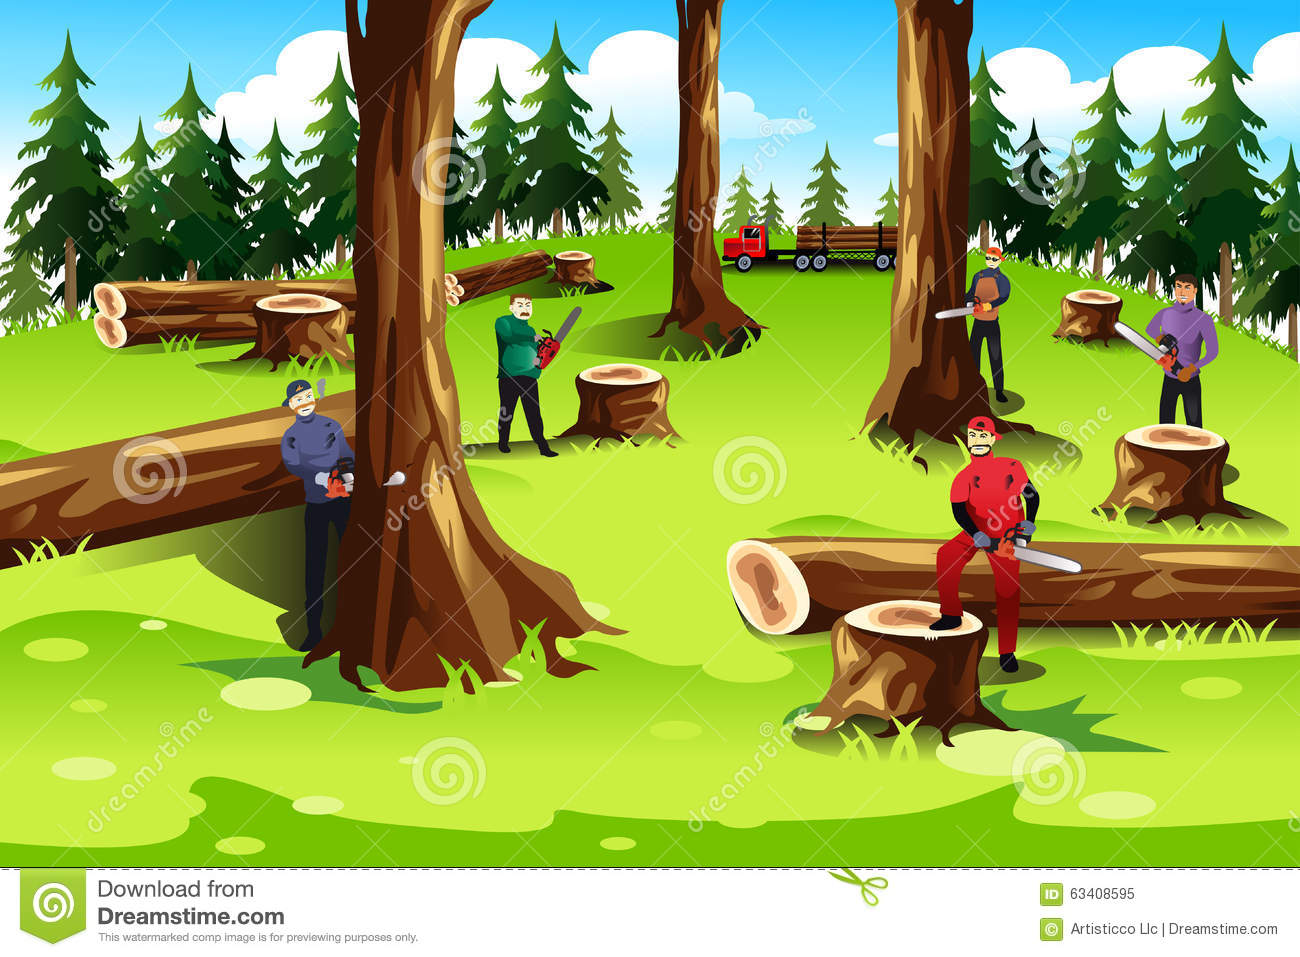 Illegal logging clipart image royalty free stock Illegal logging clipart 5 » Clipart Station image royalty free stock